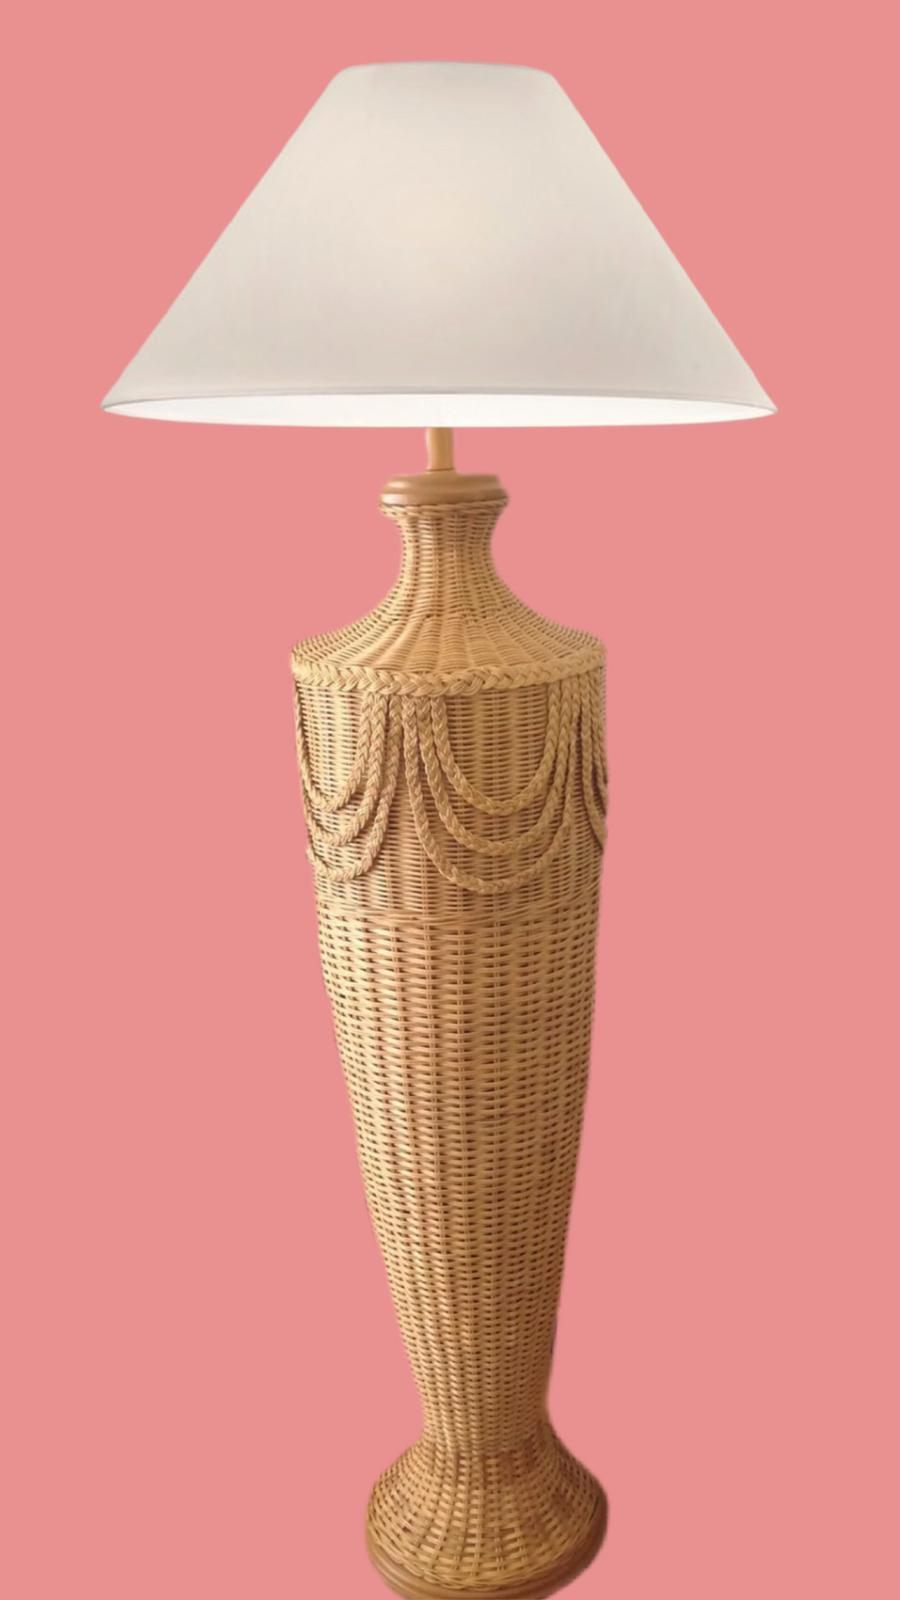 Vintage Rattan Braided Floor Lamp